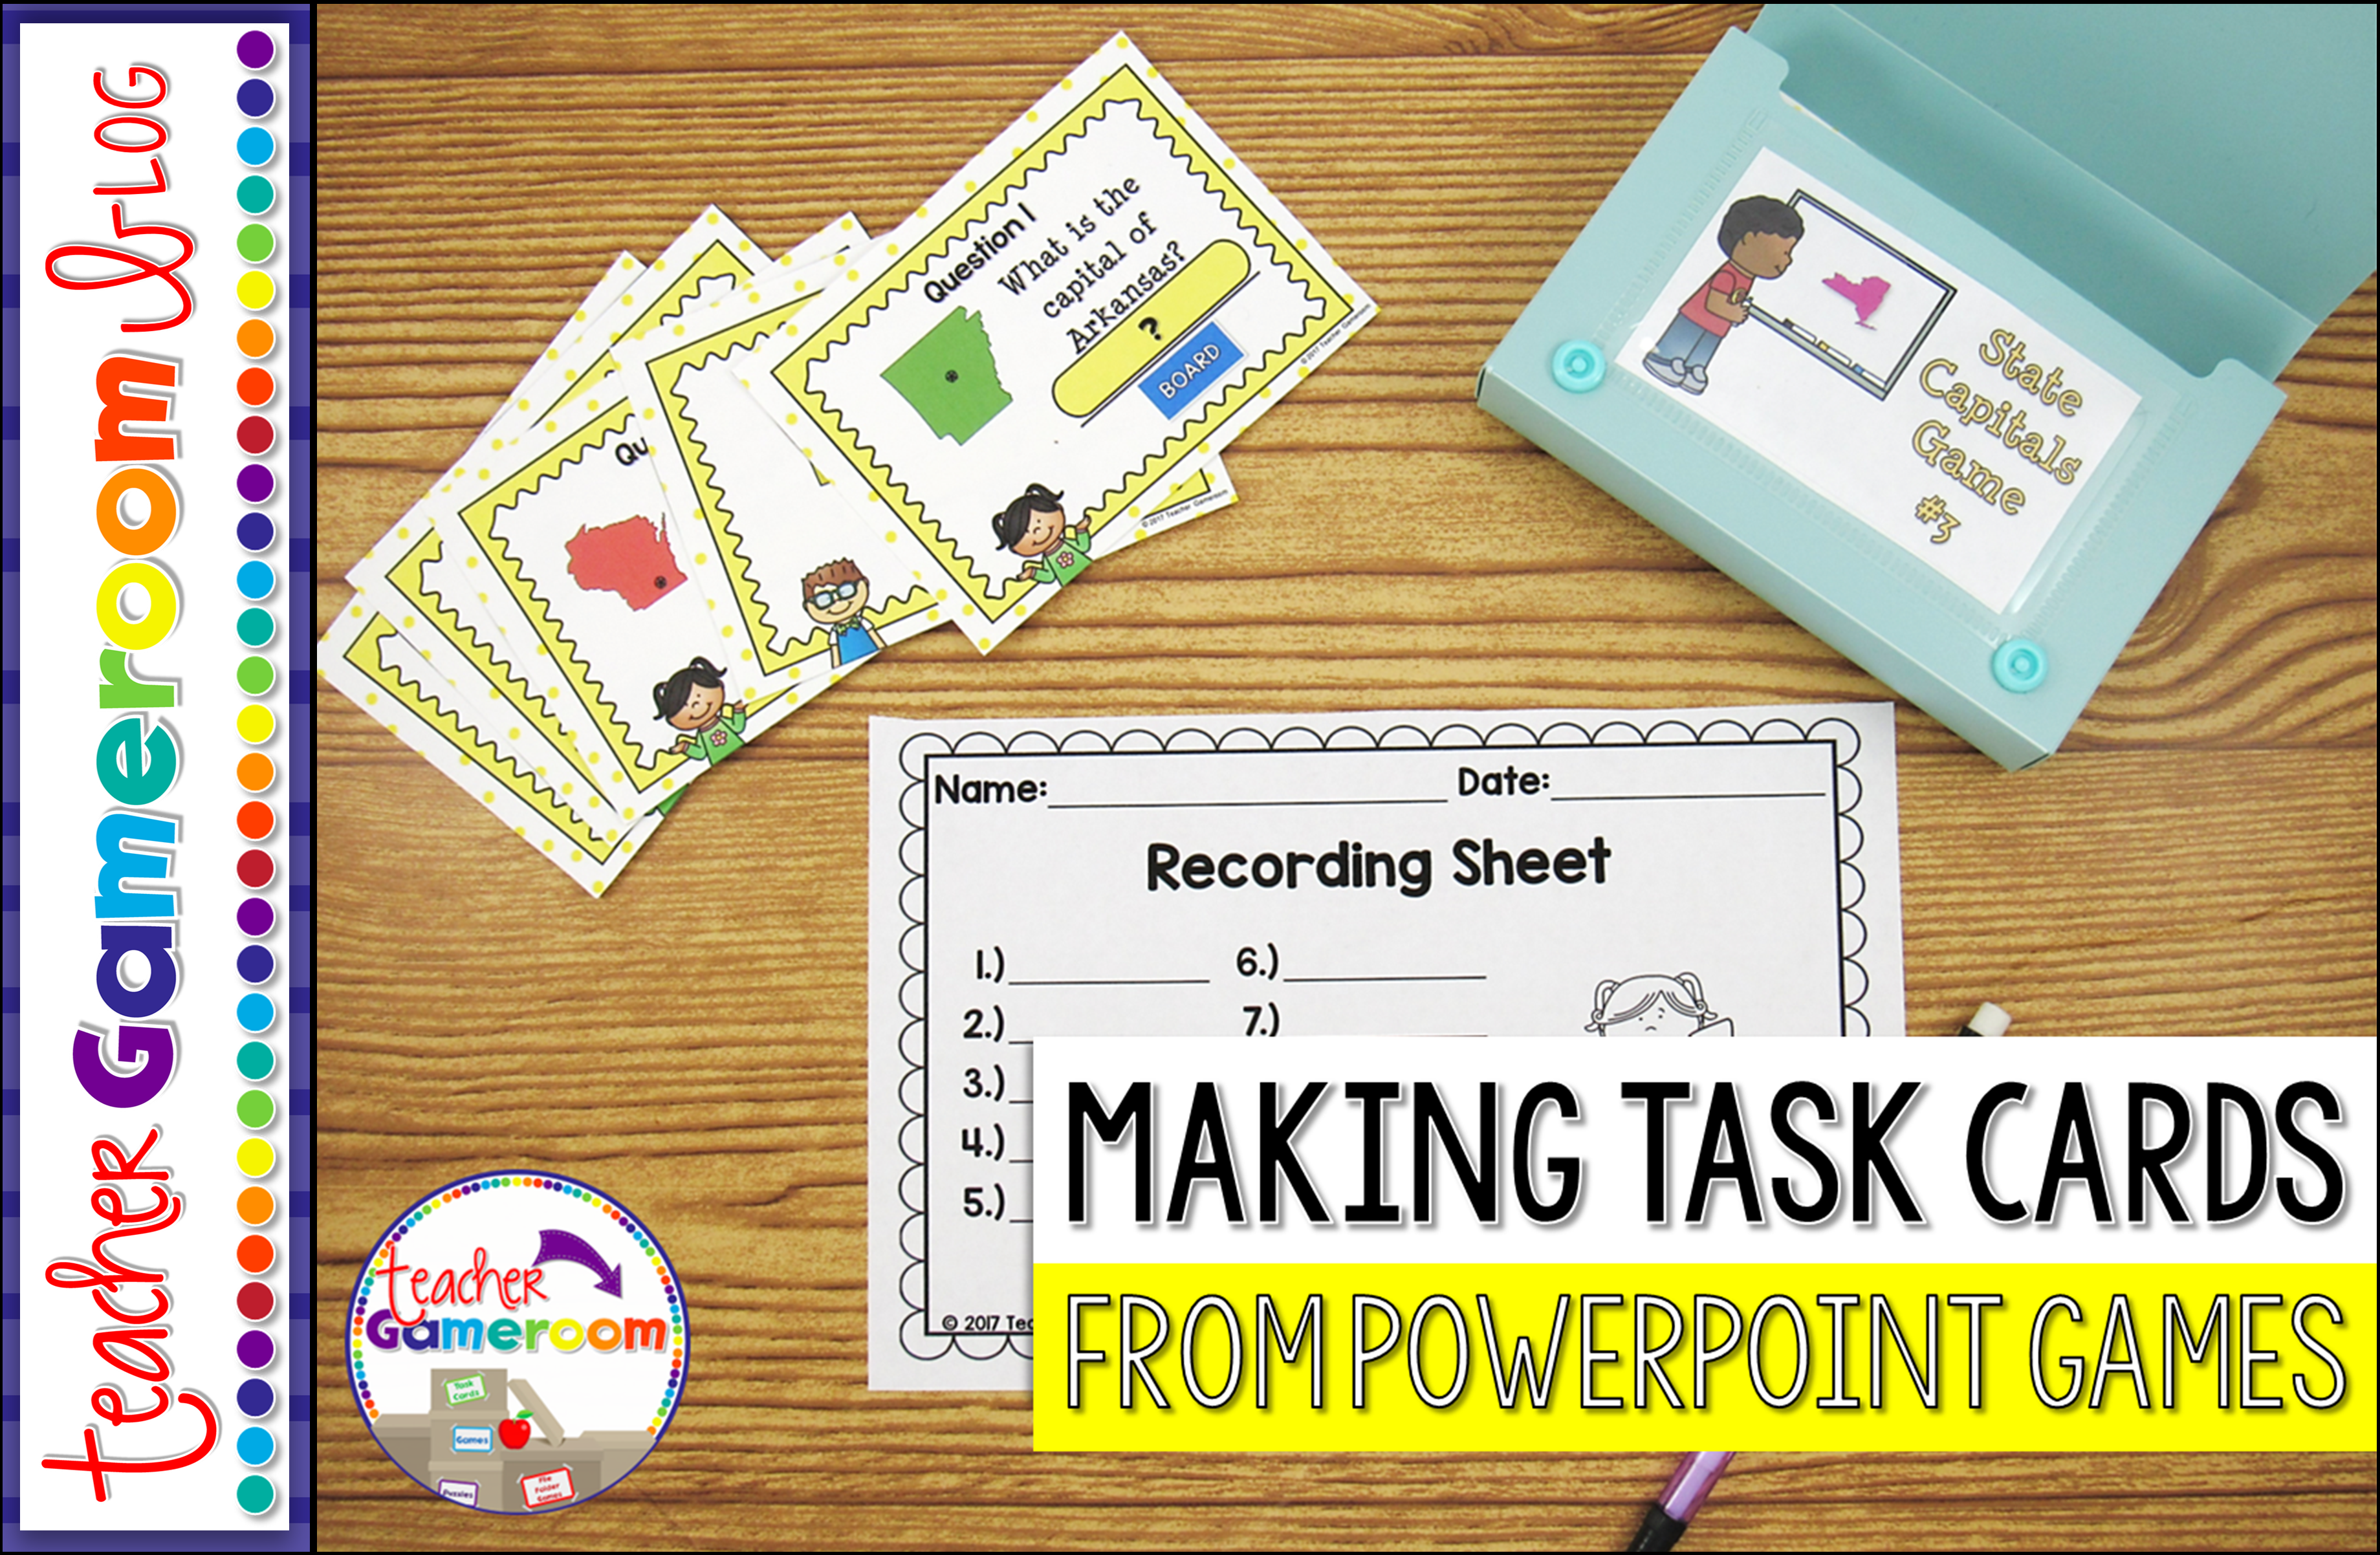 How To Make Task Cards From A Powerpoint Game Teacher Gameroom - Task card template